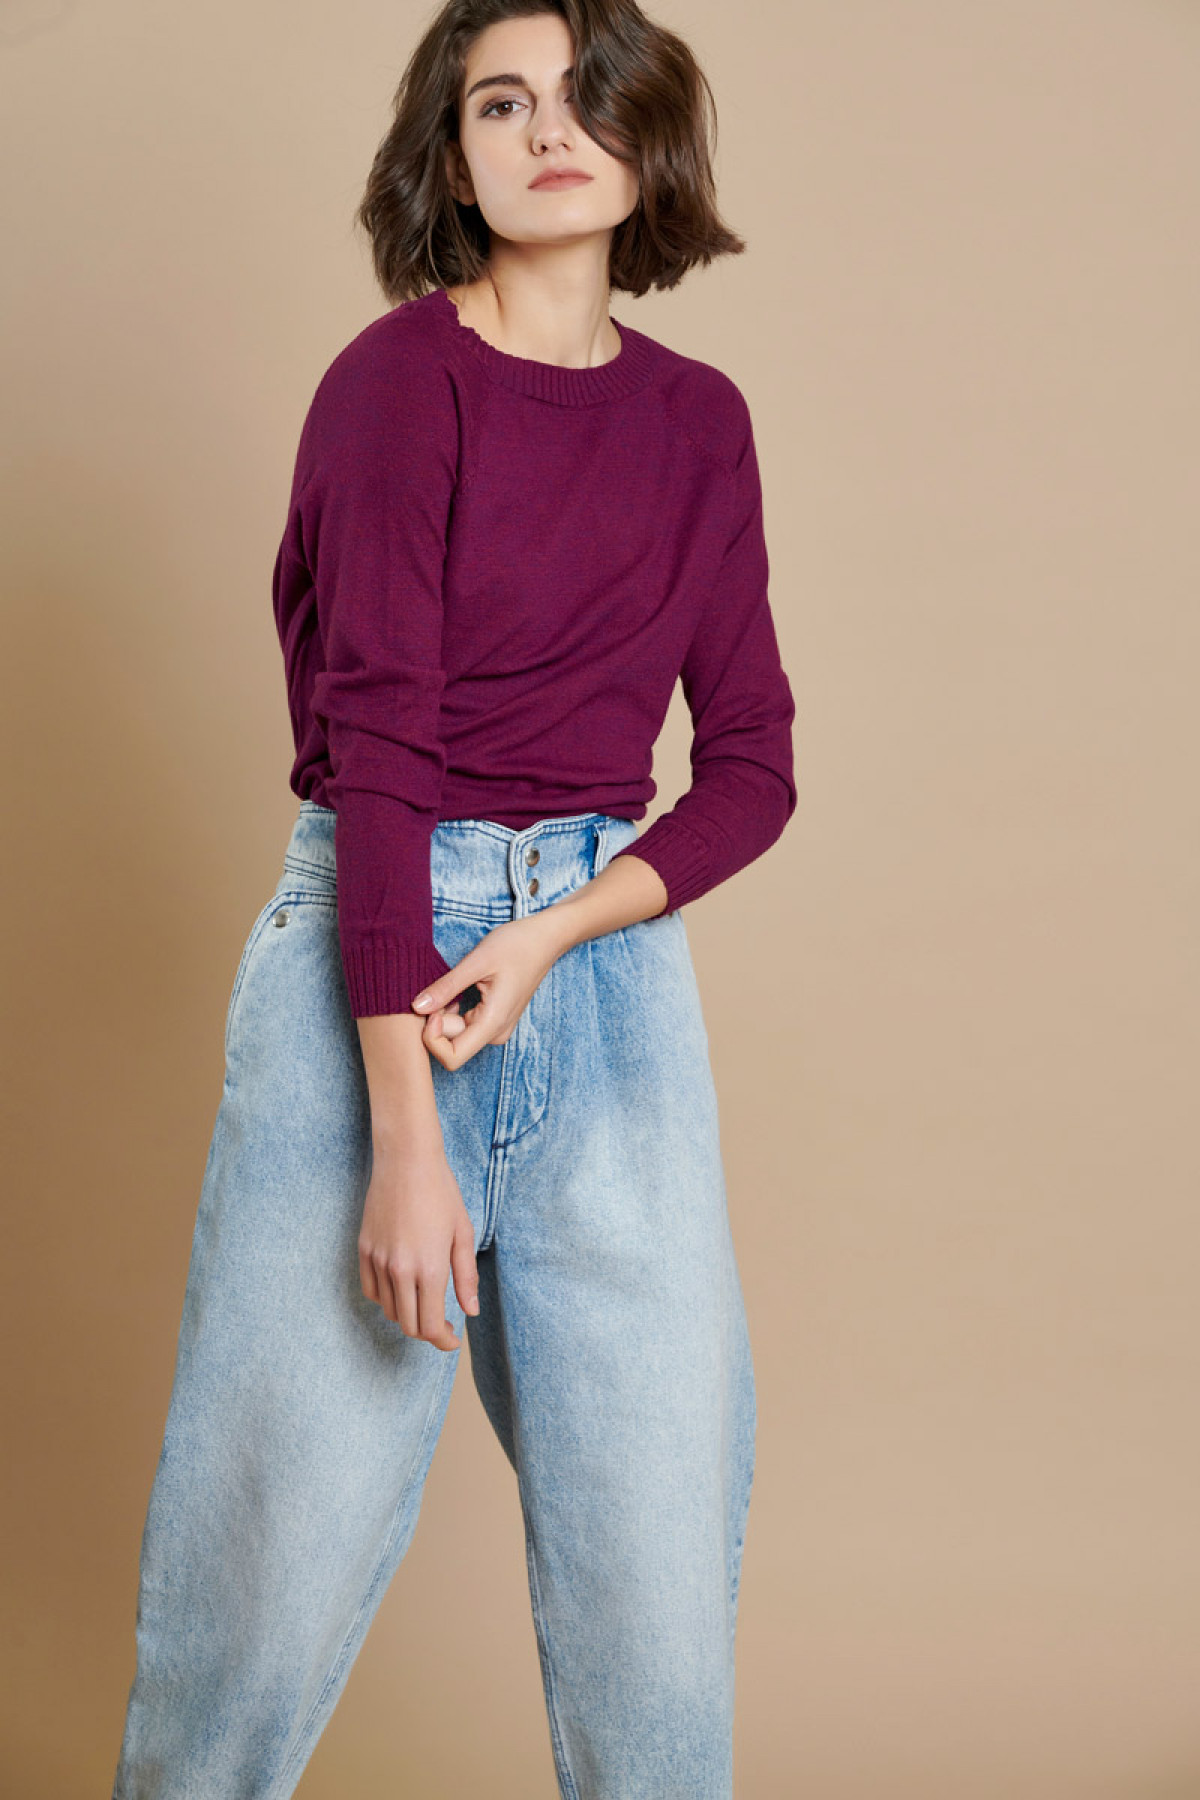 PURPLE BASIC ROUND NECK KNIT SWEATER